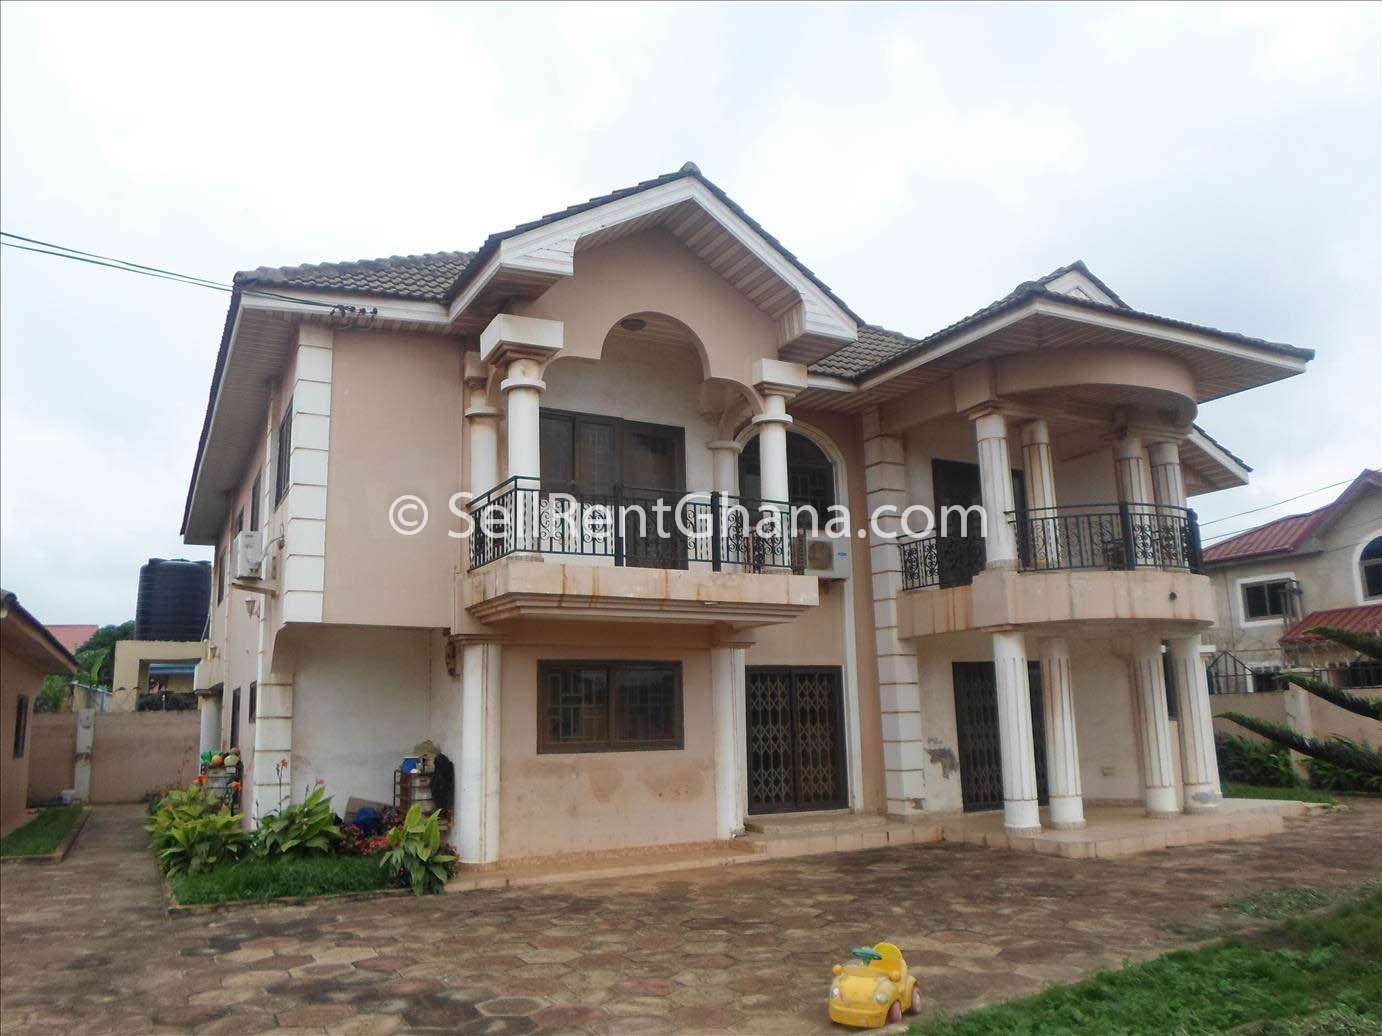 6 bedroom house for sale in spintex sellrent ghana for 6 bed house to rent